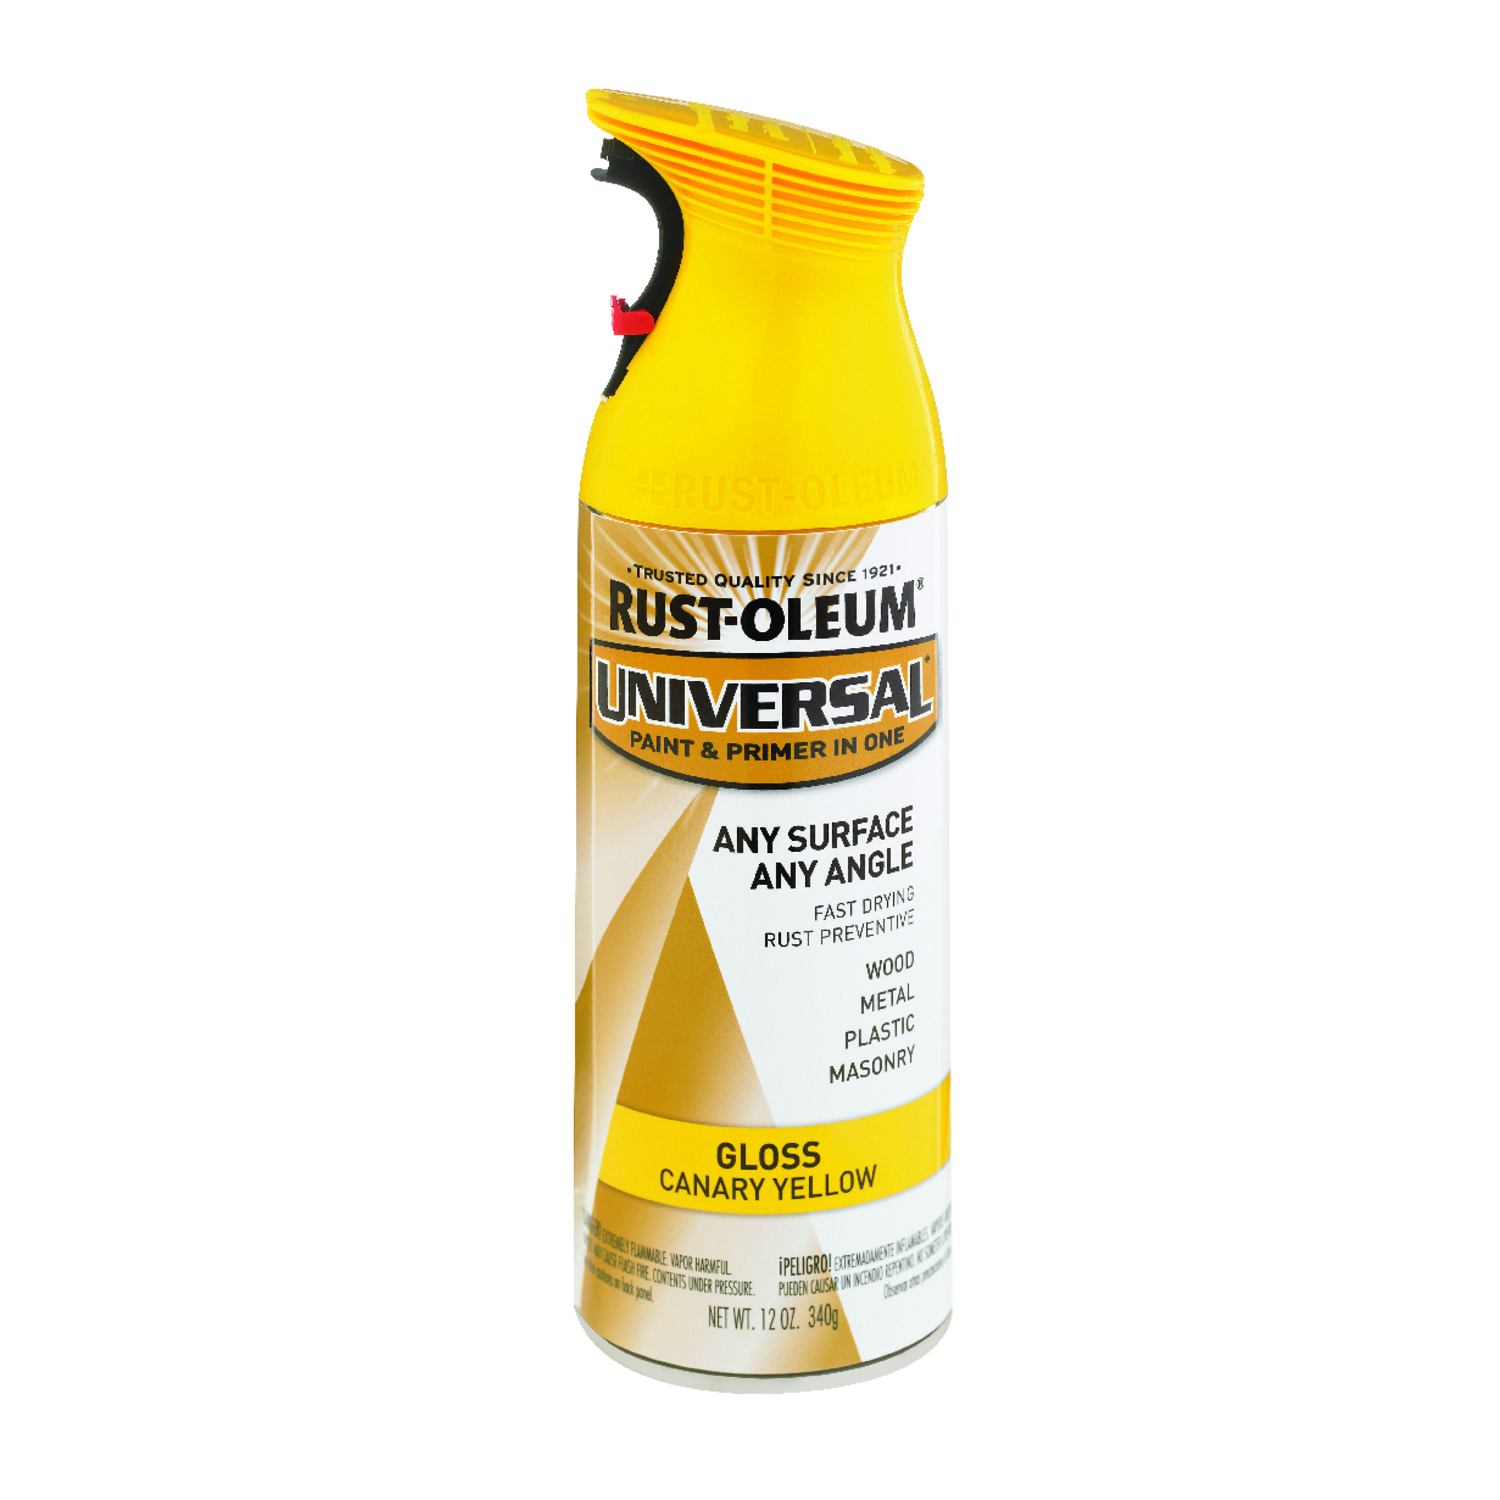 Rust-Oleum  Universal Paint & Primer in One  Gloss  Spray Paint  Canary Yellow  12 oz.